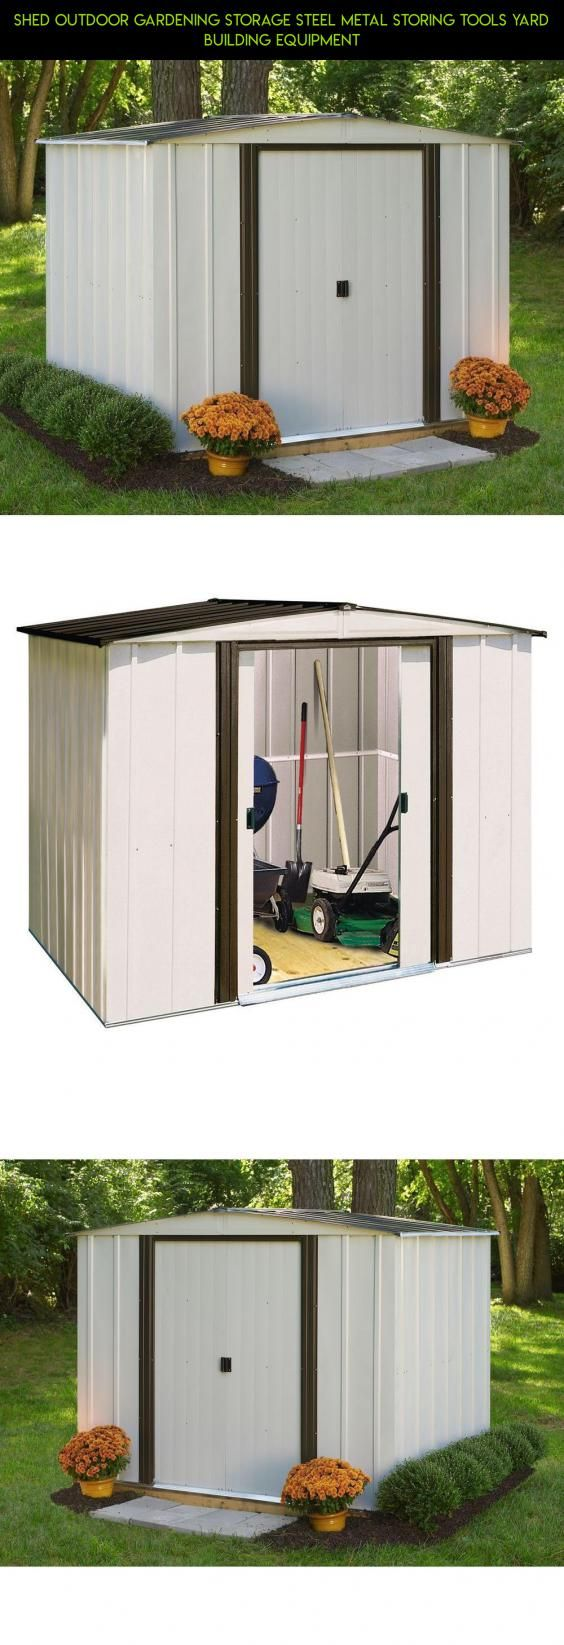 Shed outdoor gardening storage steel metal storing tools yard building equipment tech drone